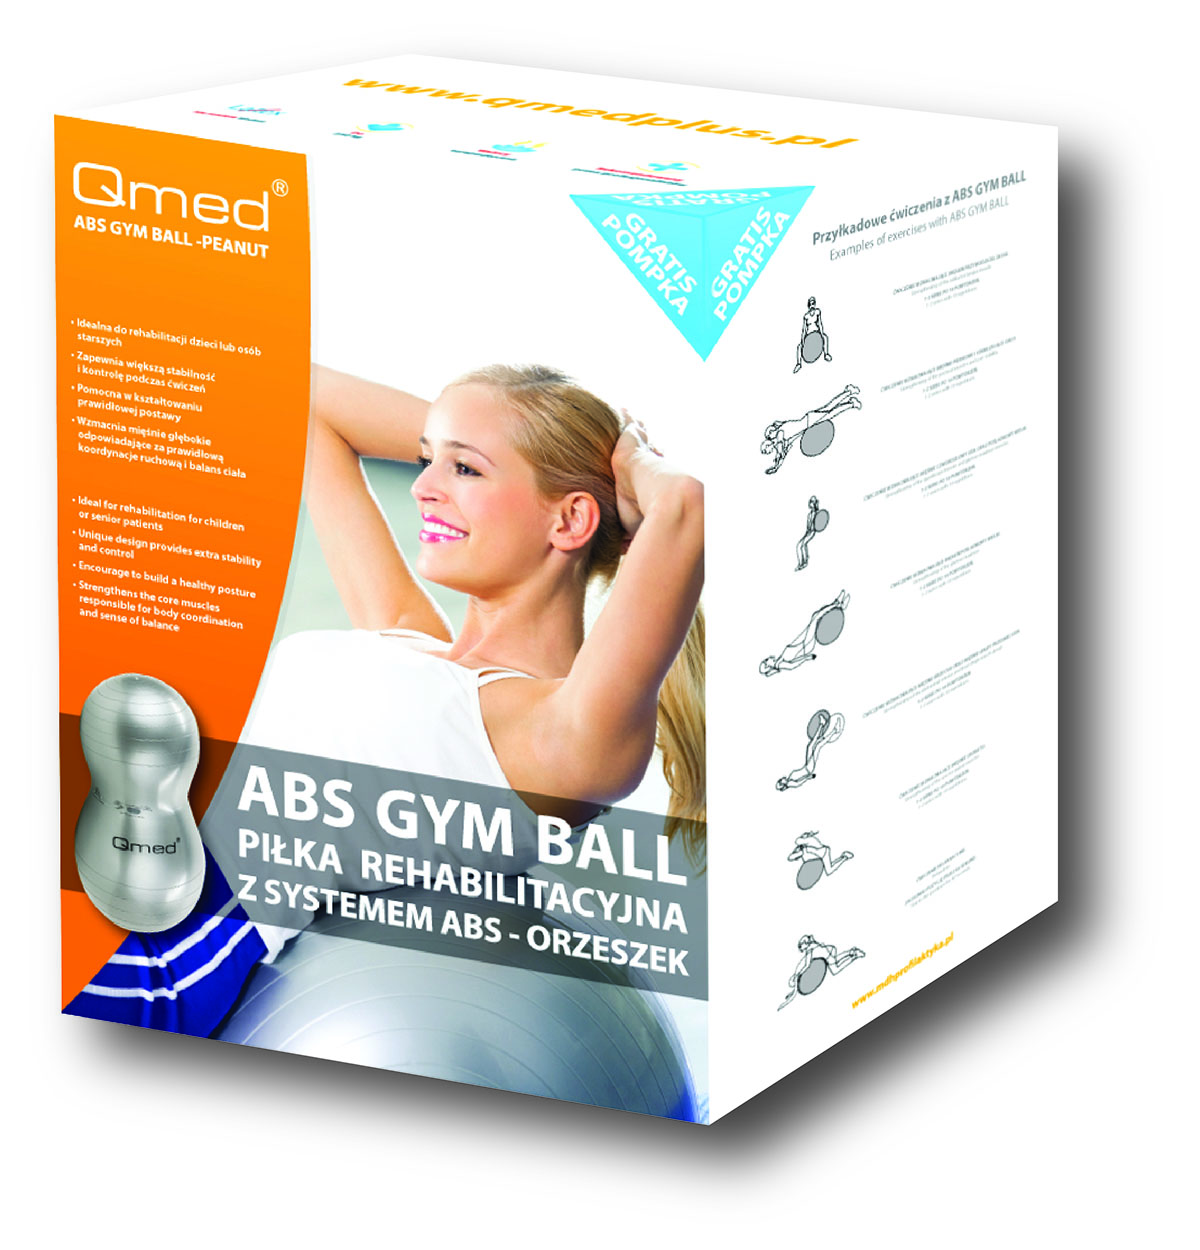 Qmed ABS Gym Ball Peanut Серый, Фитбол арахис, гимнастический мяч для фитнеса и реабилитации